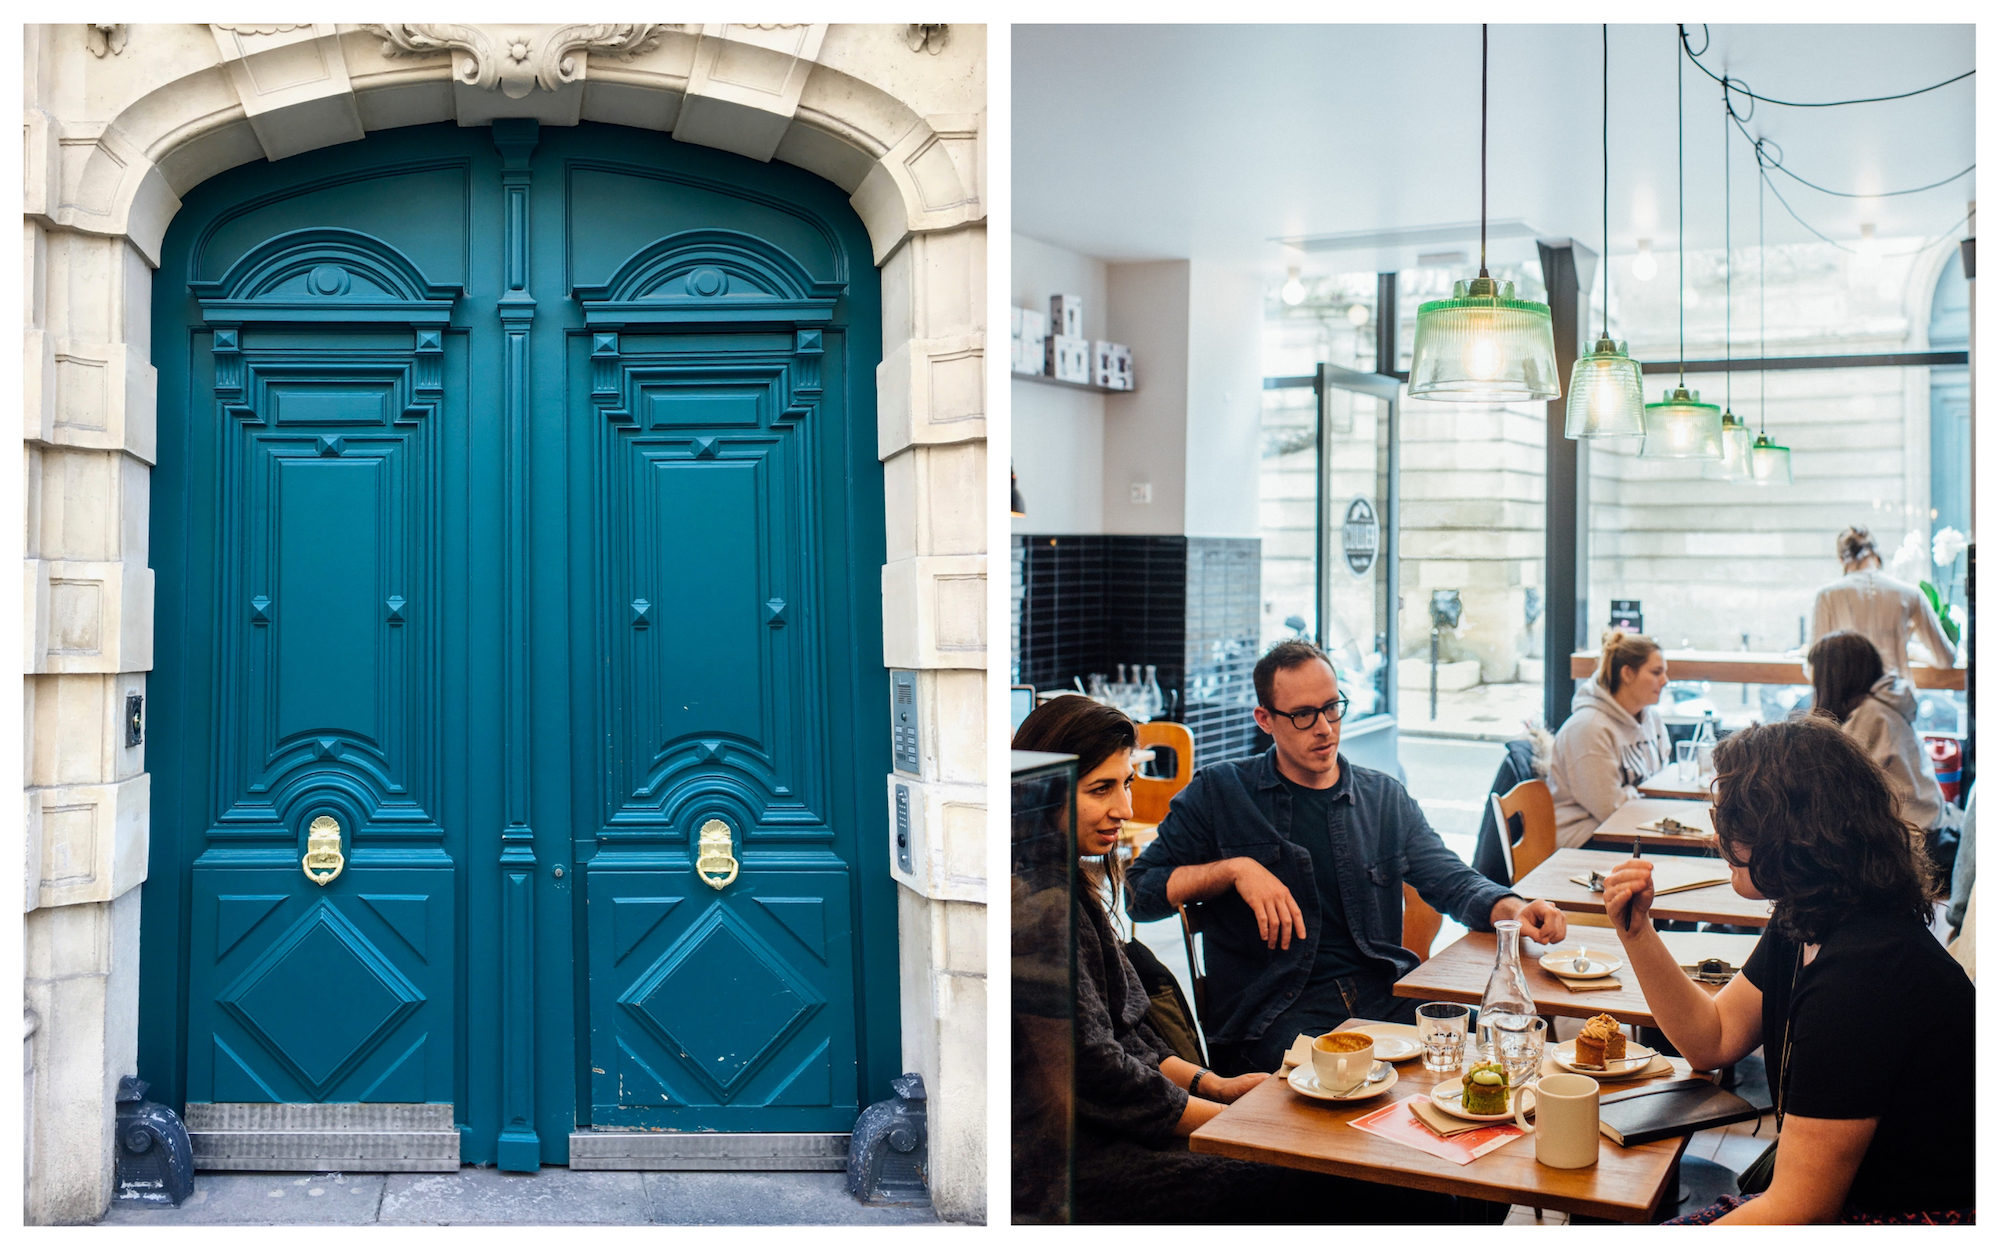 Beautiful Paris doors are a reason in themselves to come back to explore the city a second time (left) as are its new restaurants (right).